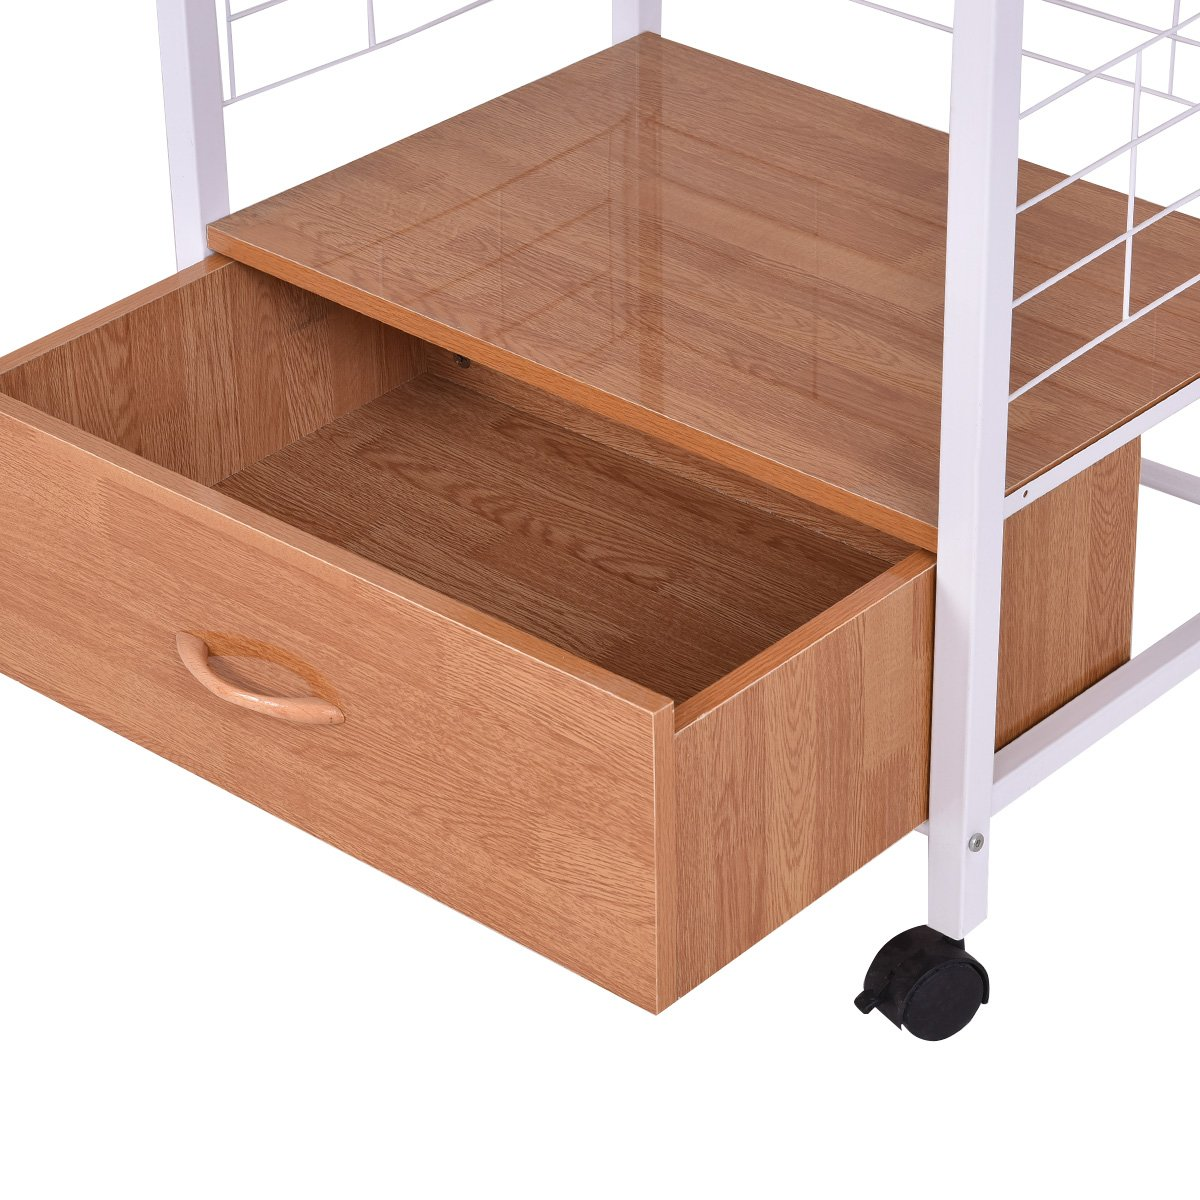 Giantex Microwave Cart Kitchen Baker's Rack Microwave Oven Stand Rolling Kitchen Storage Cart Utensils Organizer w/Electric Outlet and Drawer by Giantex (Image #9)